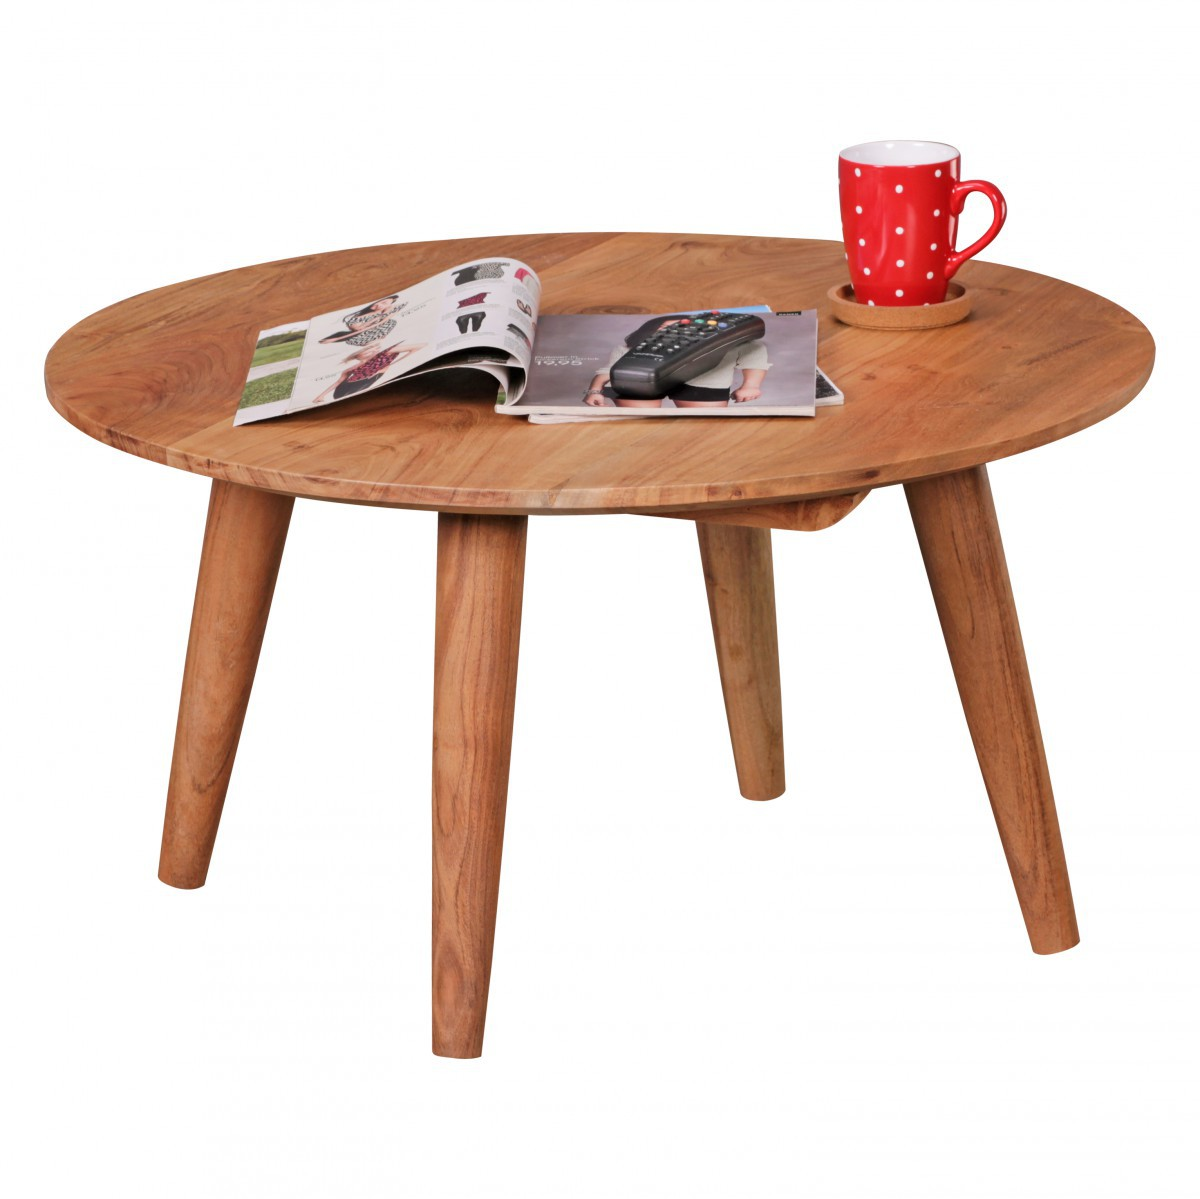 Finebuy table basse en bois massif acacia table basse ronde 75 x 40 cm ferme - Tables basses rondes en bois ...